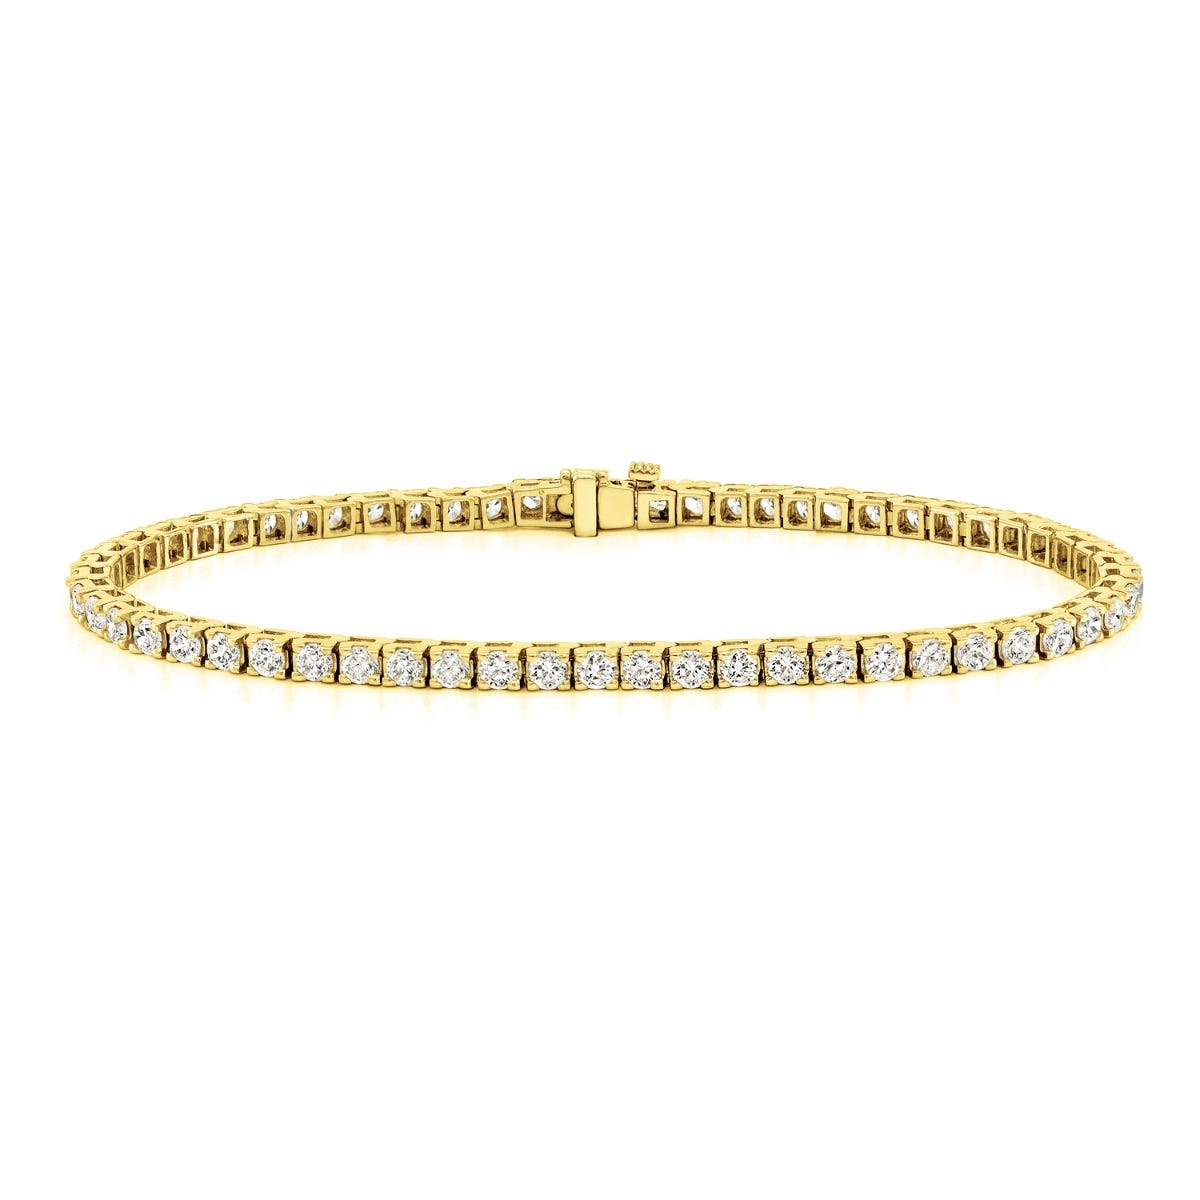 1.50ctw. 4-Prong Square Link Diamond Tennis Bracelet in 14K Yellow Gold (IJ, I1-I2)